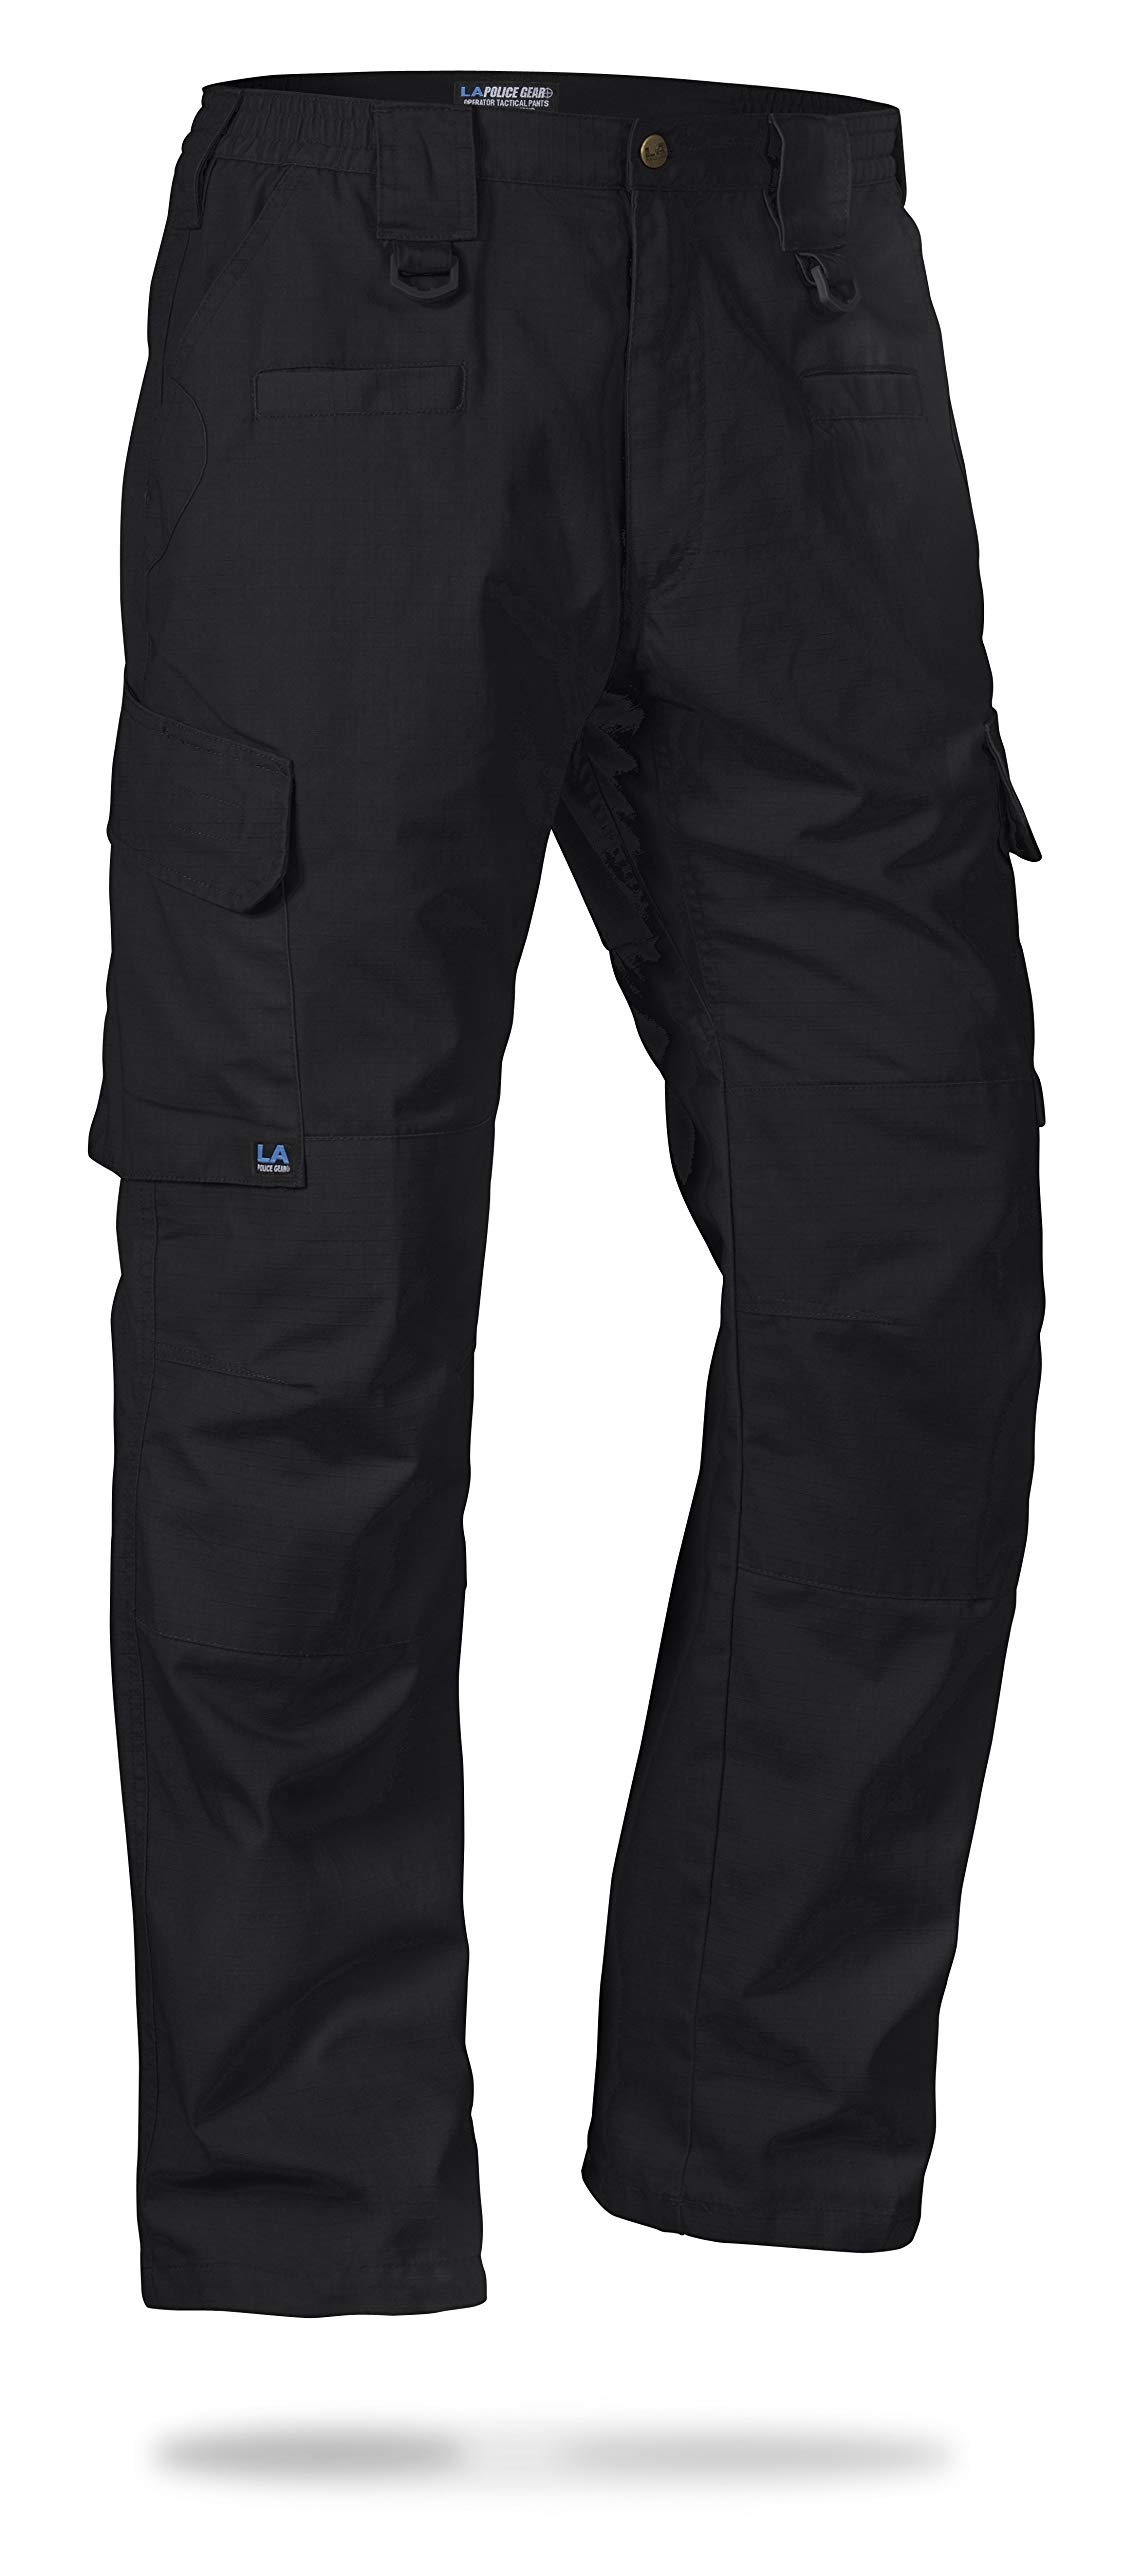 533260fa748ea LA Police Gear Men's Operator Tactical Pant with Elastic Waistband product  image